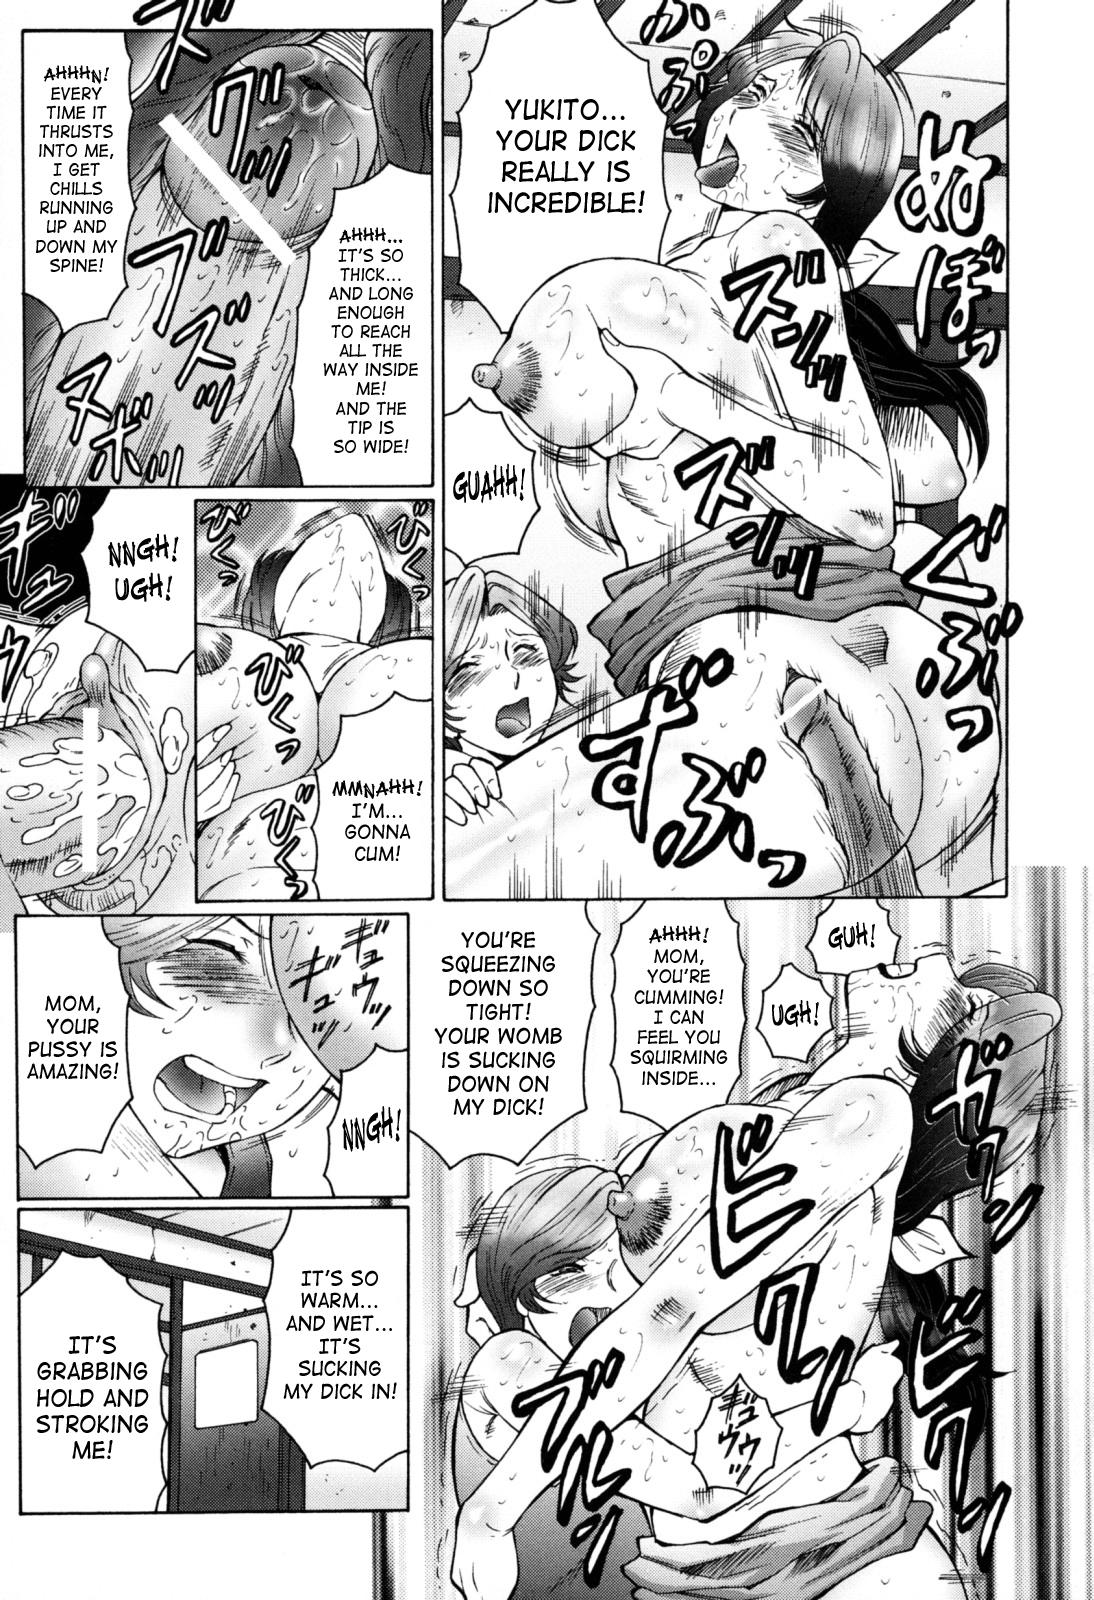 [Fuusen Club] Boshino Toriko - The Captive of Mother and the Son | Enslaved Mother and Son Ch. 1-5 [English] [SaHa] 92